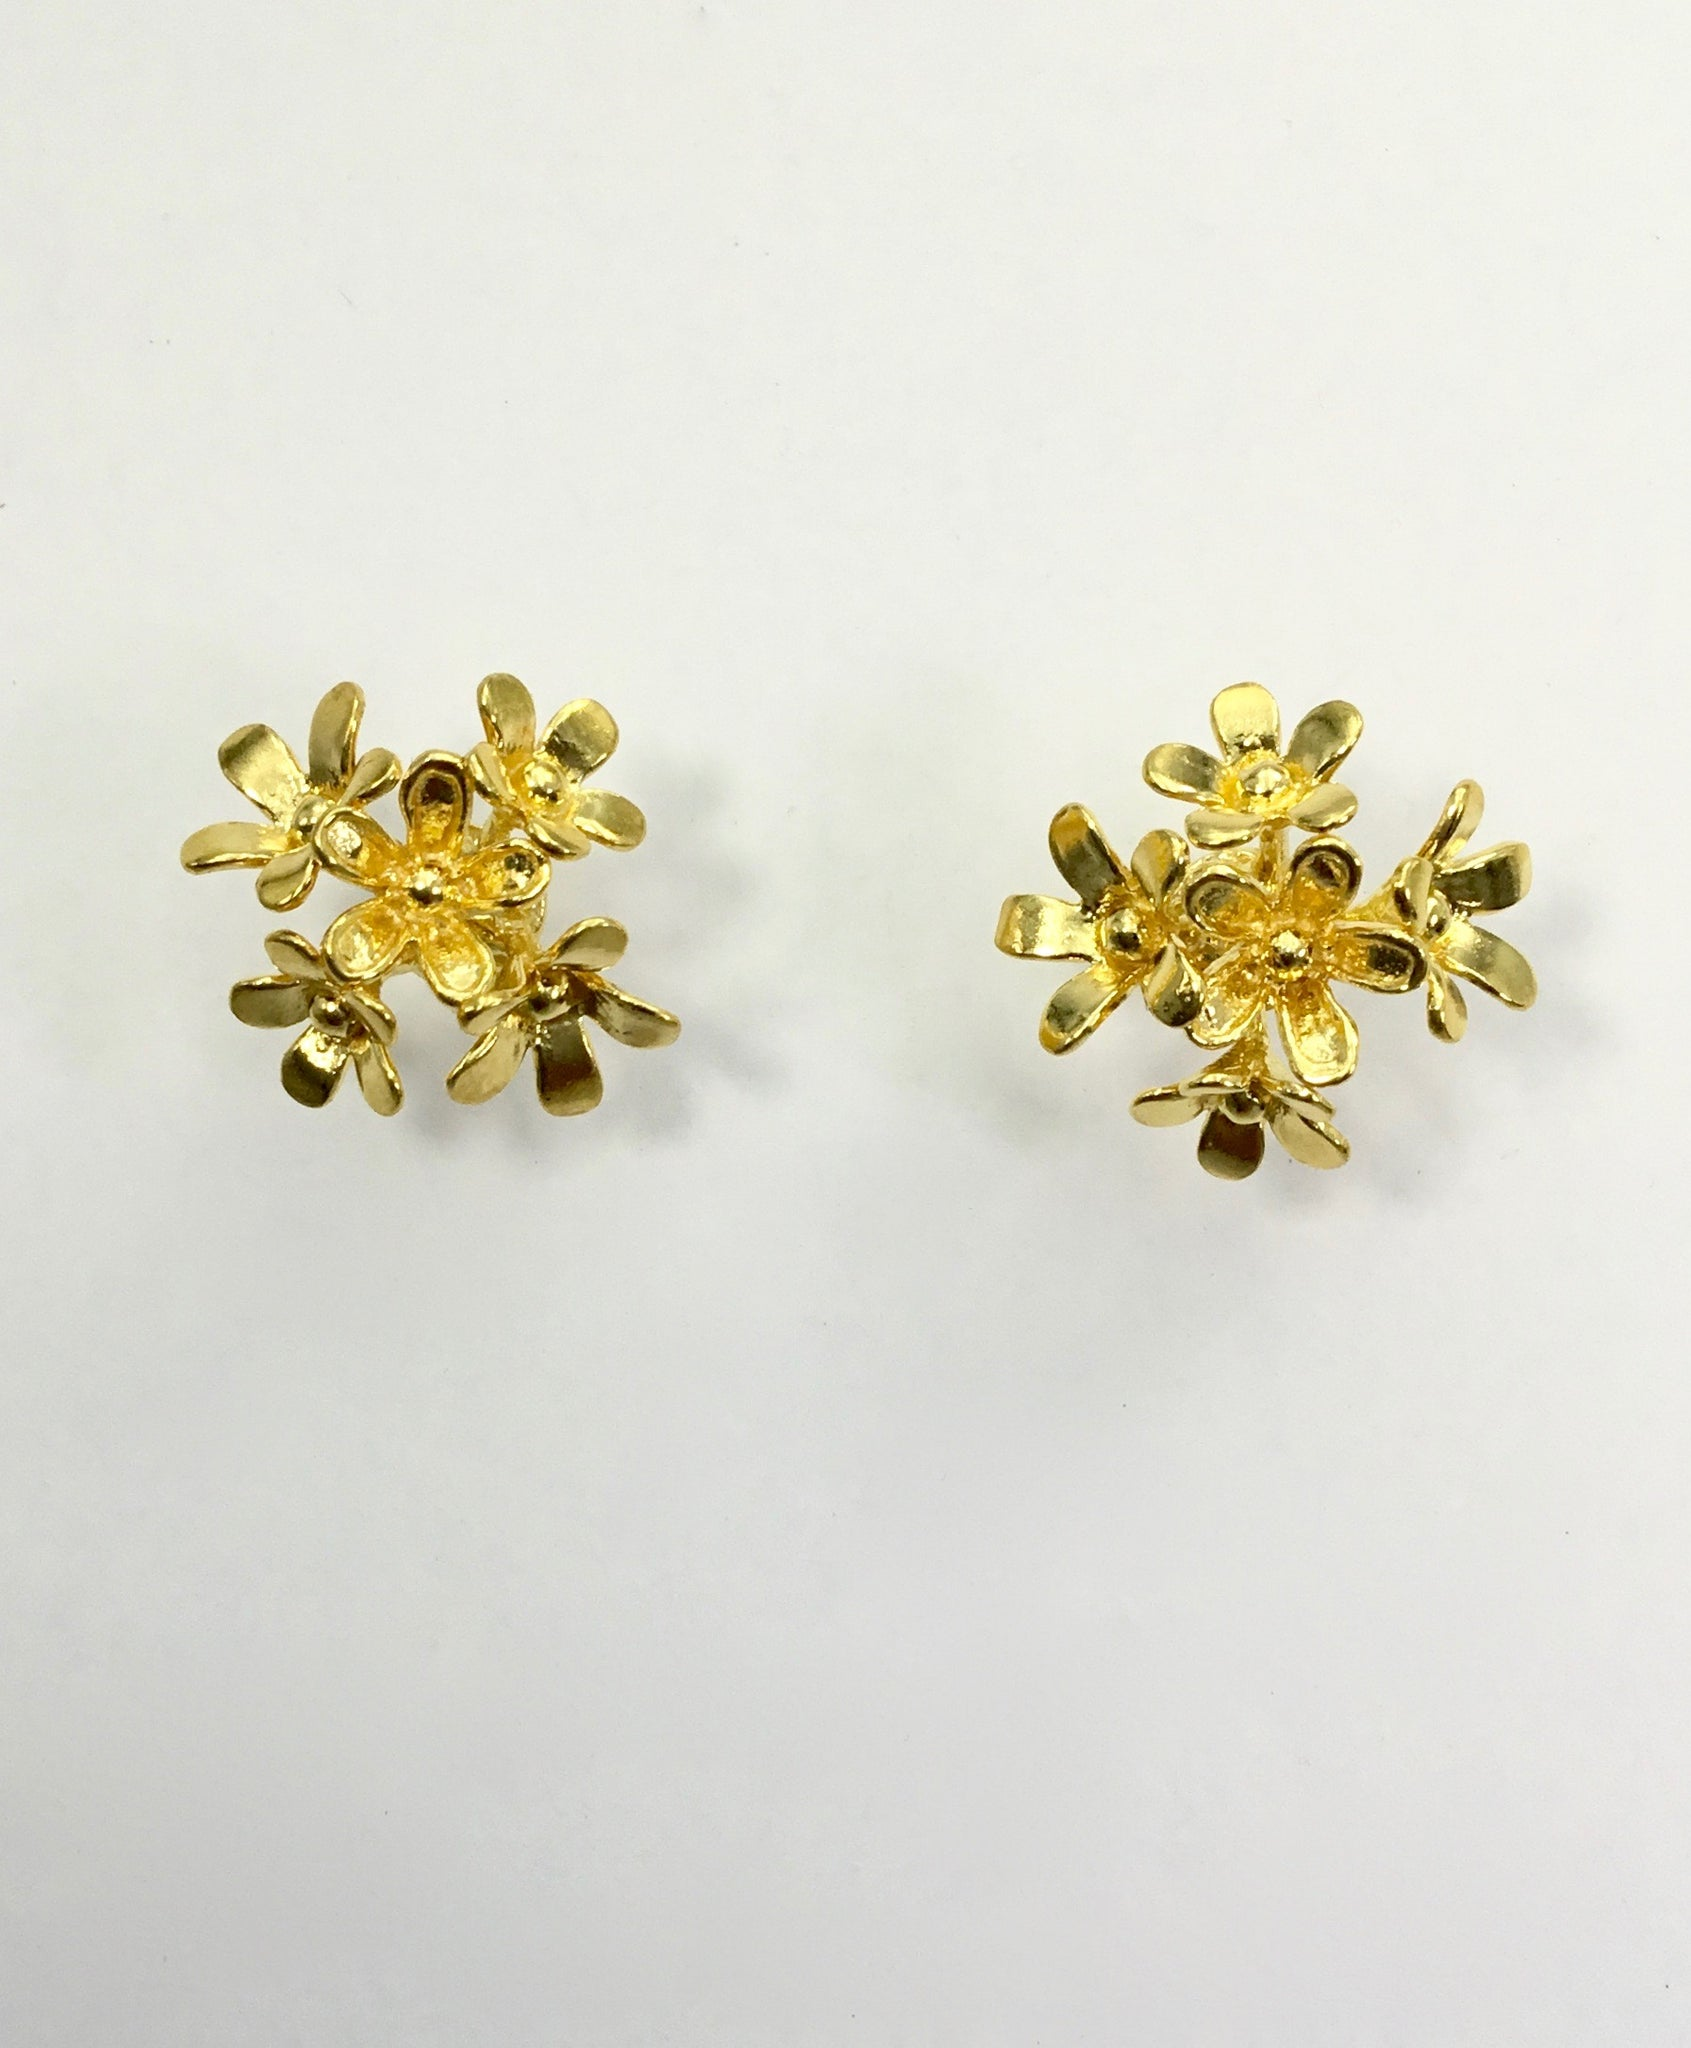 Priya Himatsingka Plumeria 5 Cluster Stud Earrings